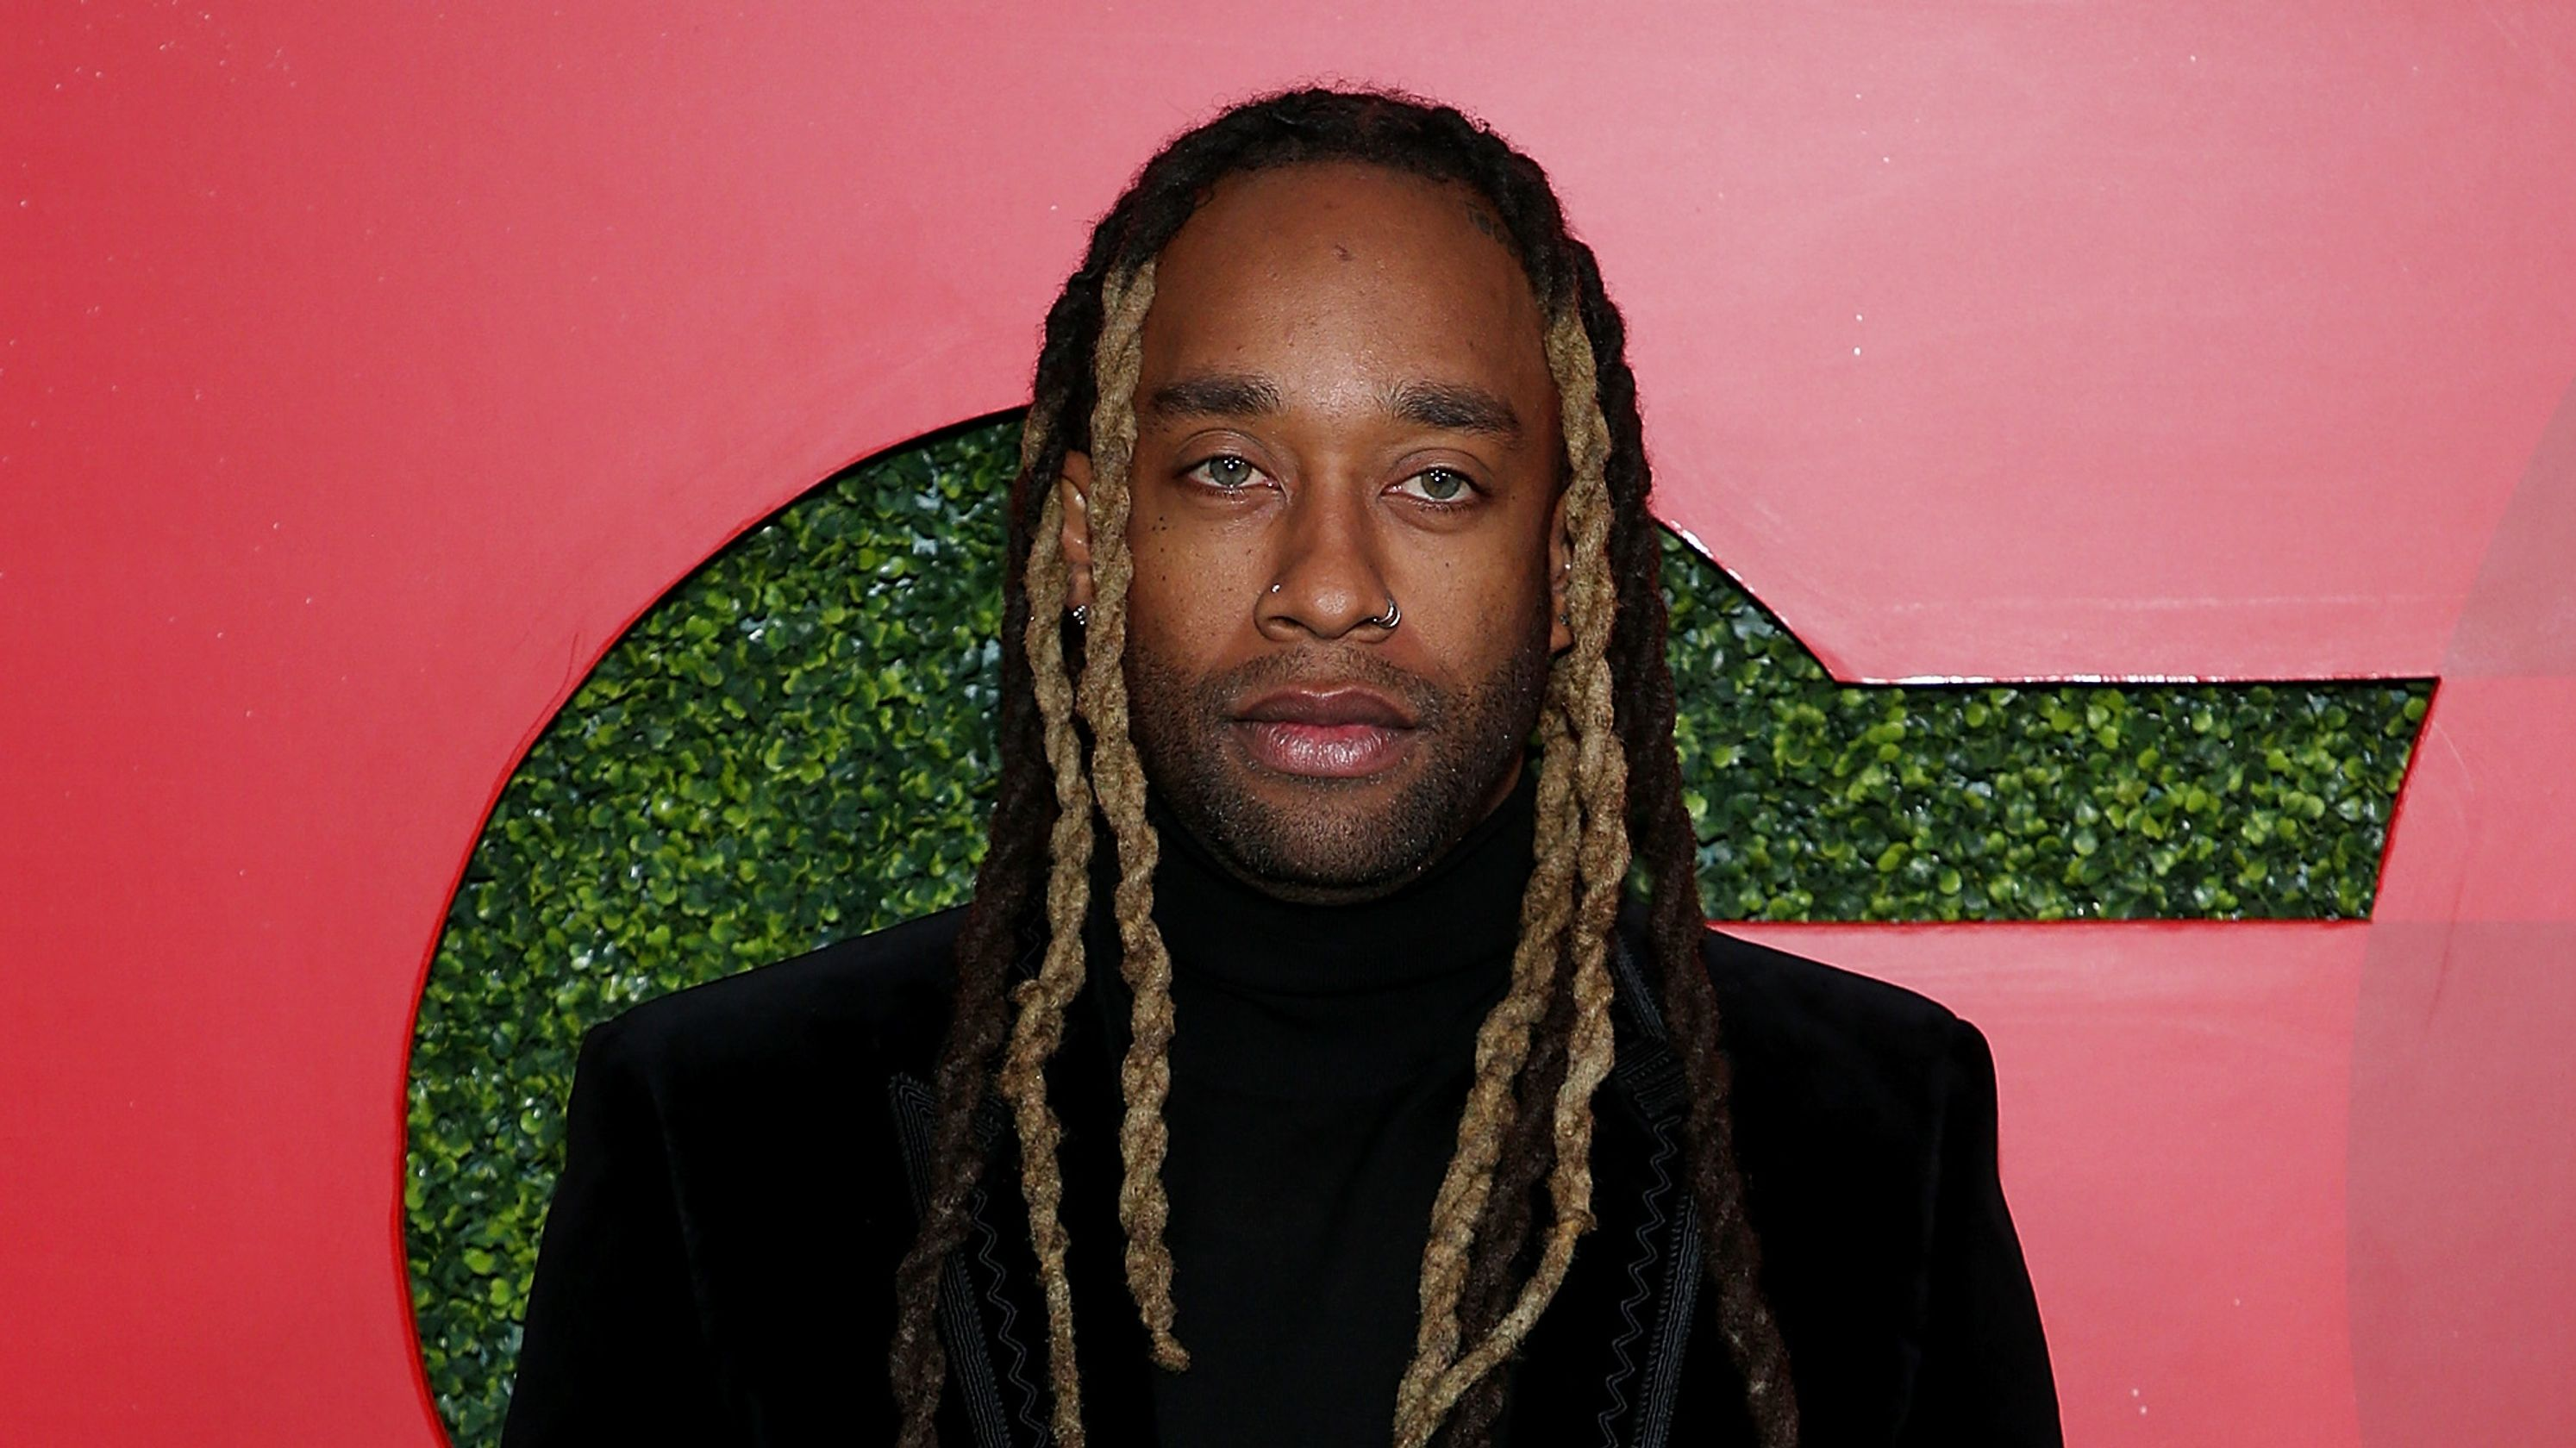 Singer and rapper Ty Dolla $ign indicted on felony drug charges from September arrest